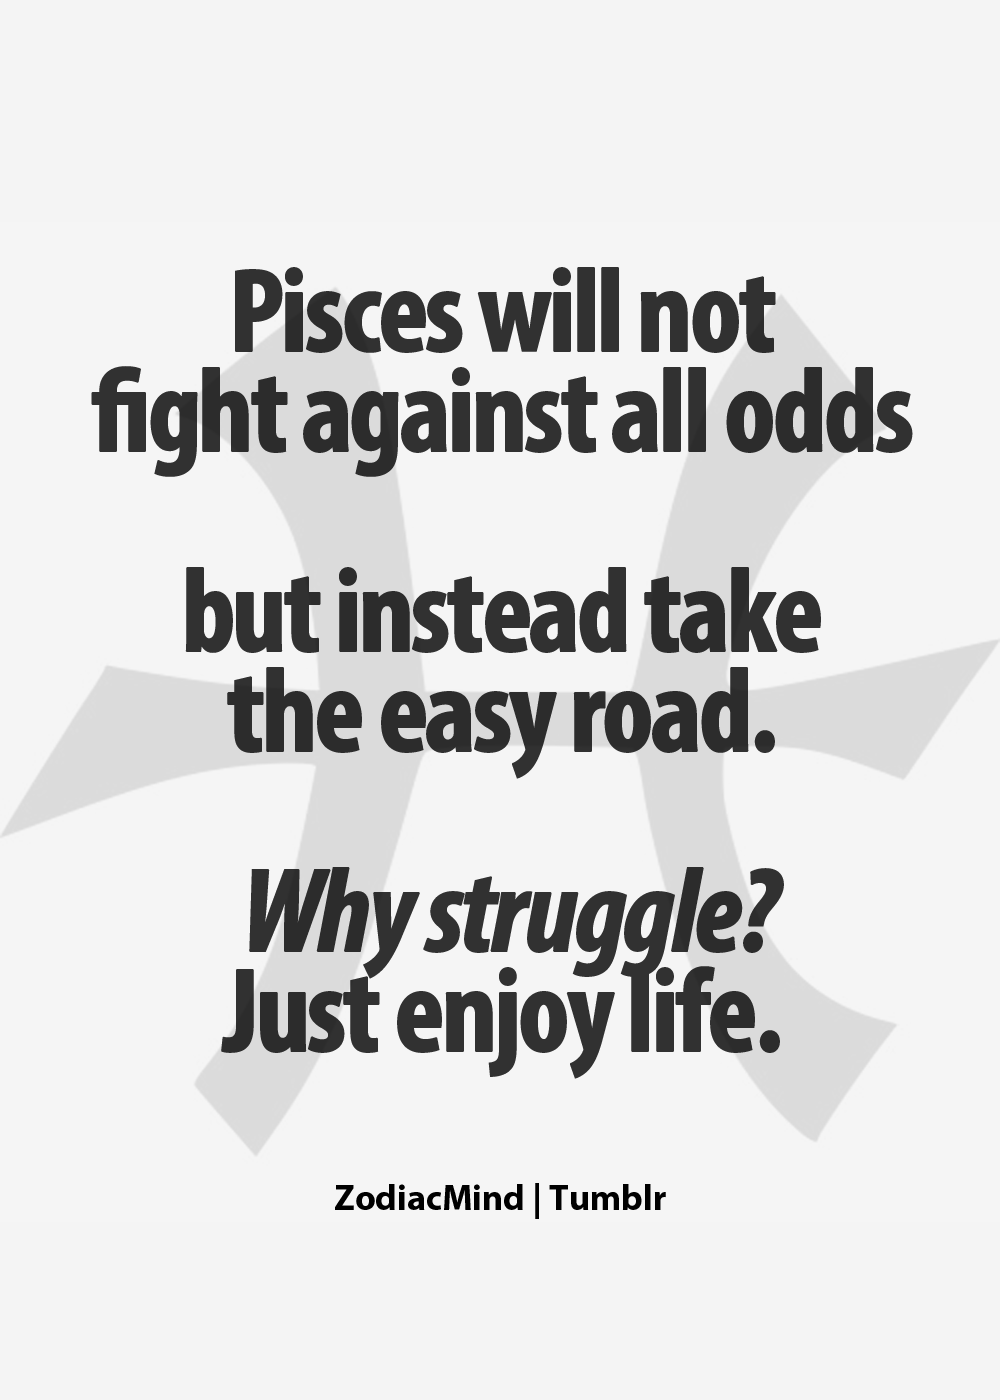 Pisces Quotes Zodiac Mind  Your 1 Source For All Fun Zodiac Related Content